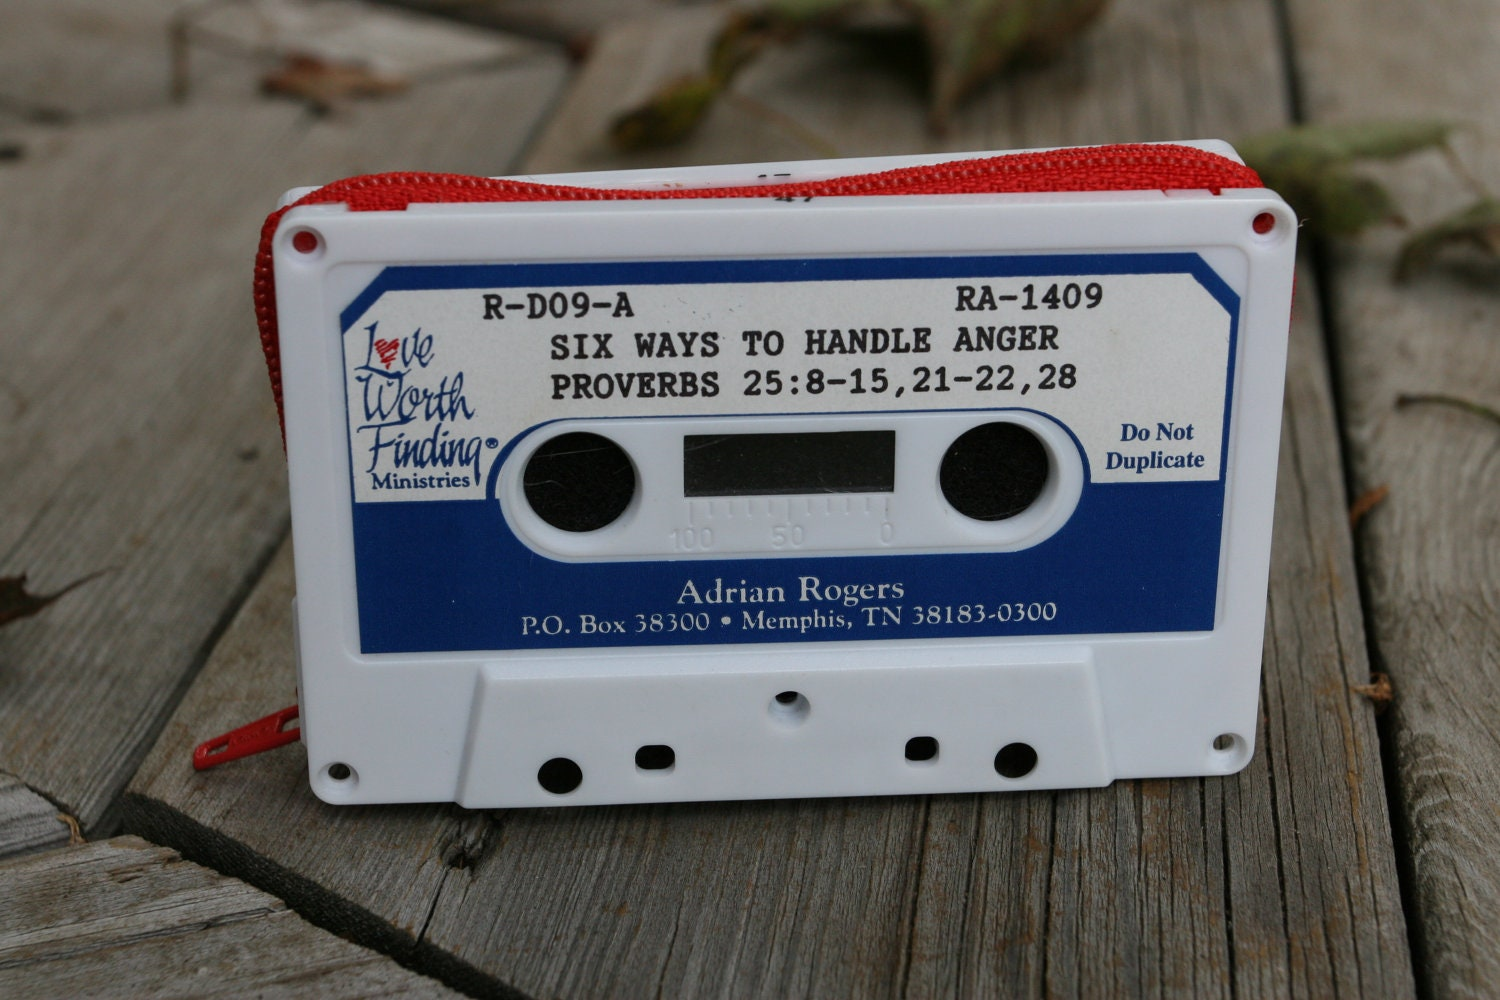 Six Ways to Handle Anger- cassette tape wallet